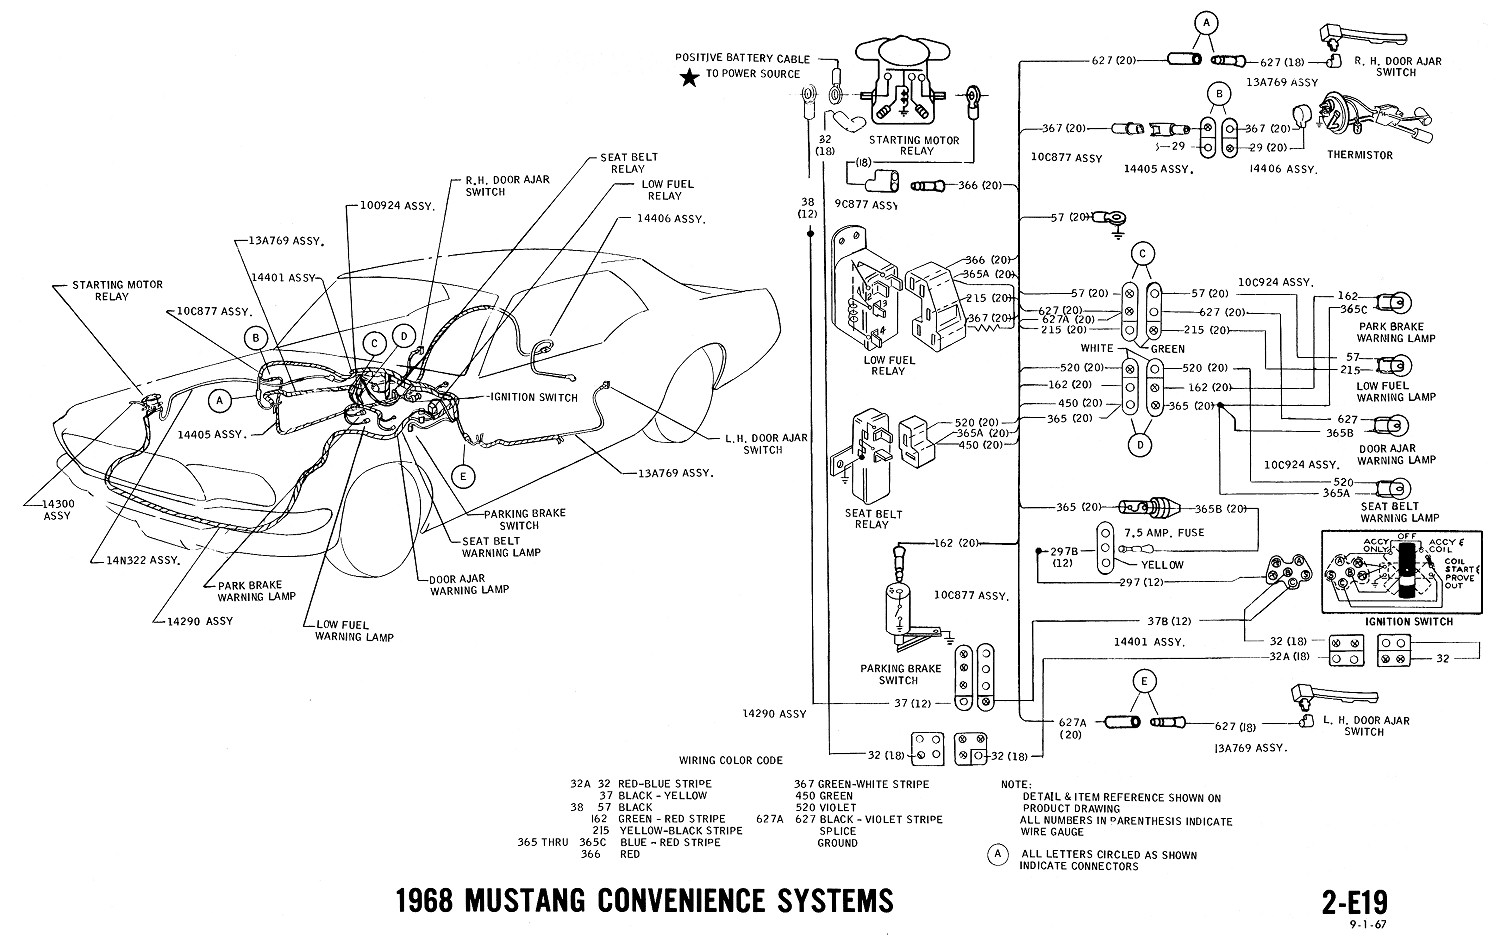 1968 Mustang Wiring Diagrams Evolving Software Lighting Convenience Systems